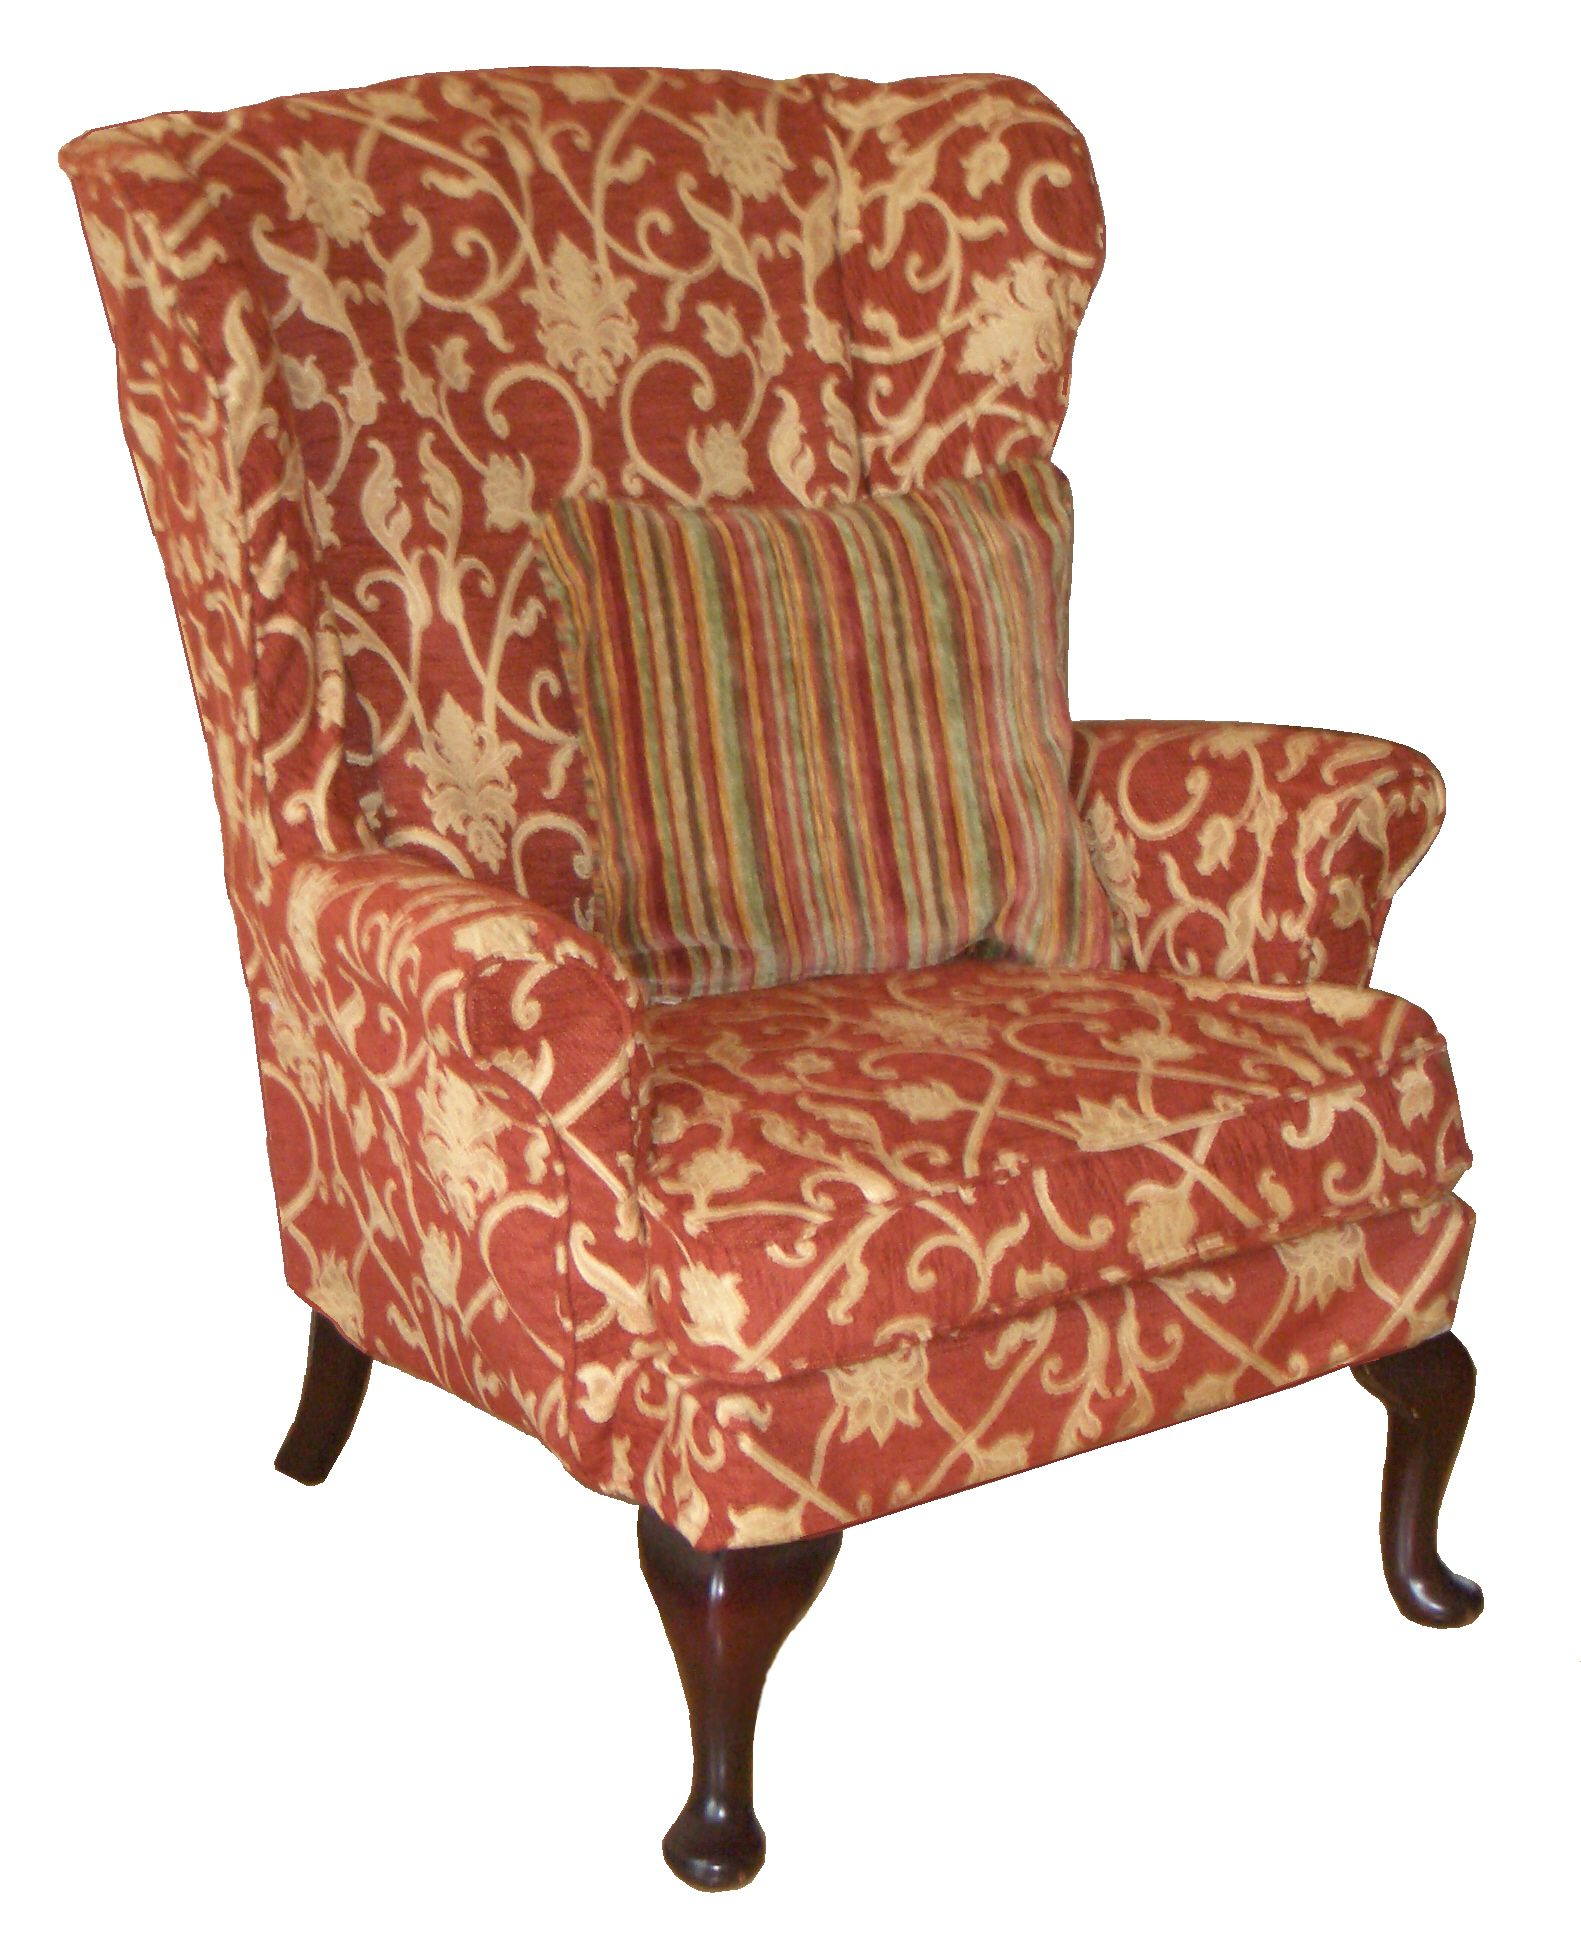 Black Wingback Chair Covers Swing Townsville Floral Cover For Wing Back Chairs Loose